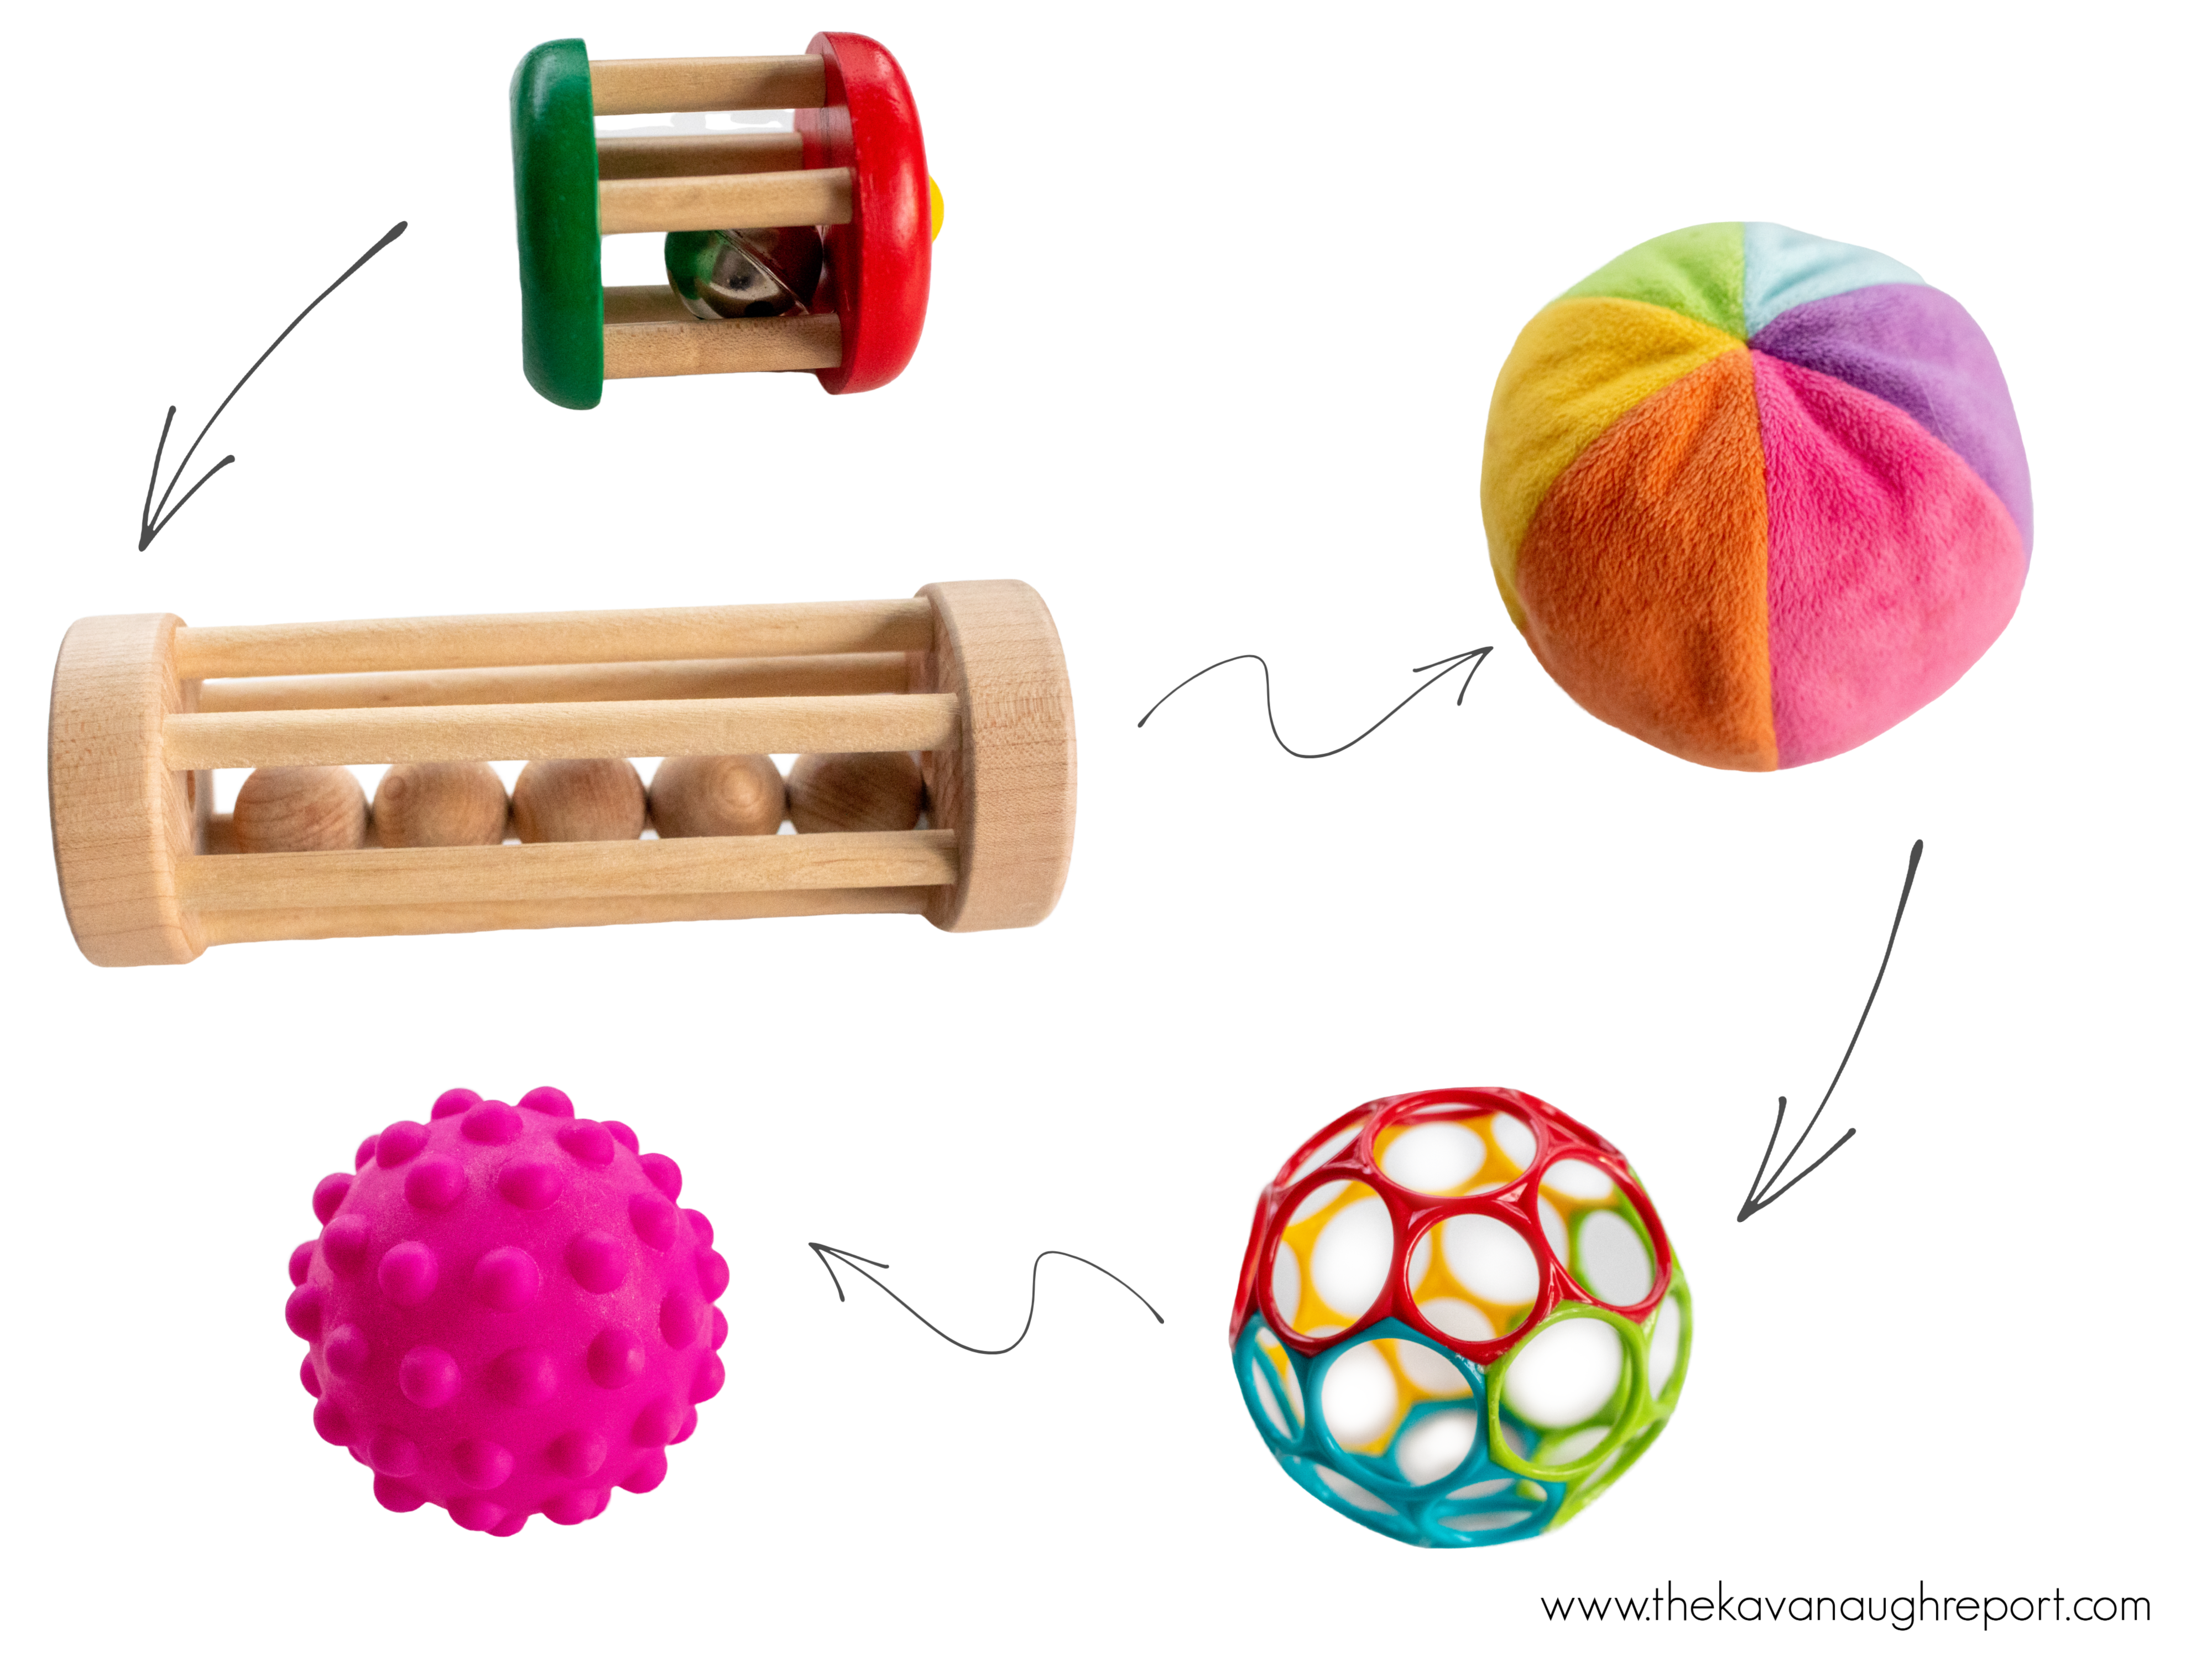 Here are some examples of Montessori baby toys that support early movement, especially crawling. These toys help babies learn to move.